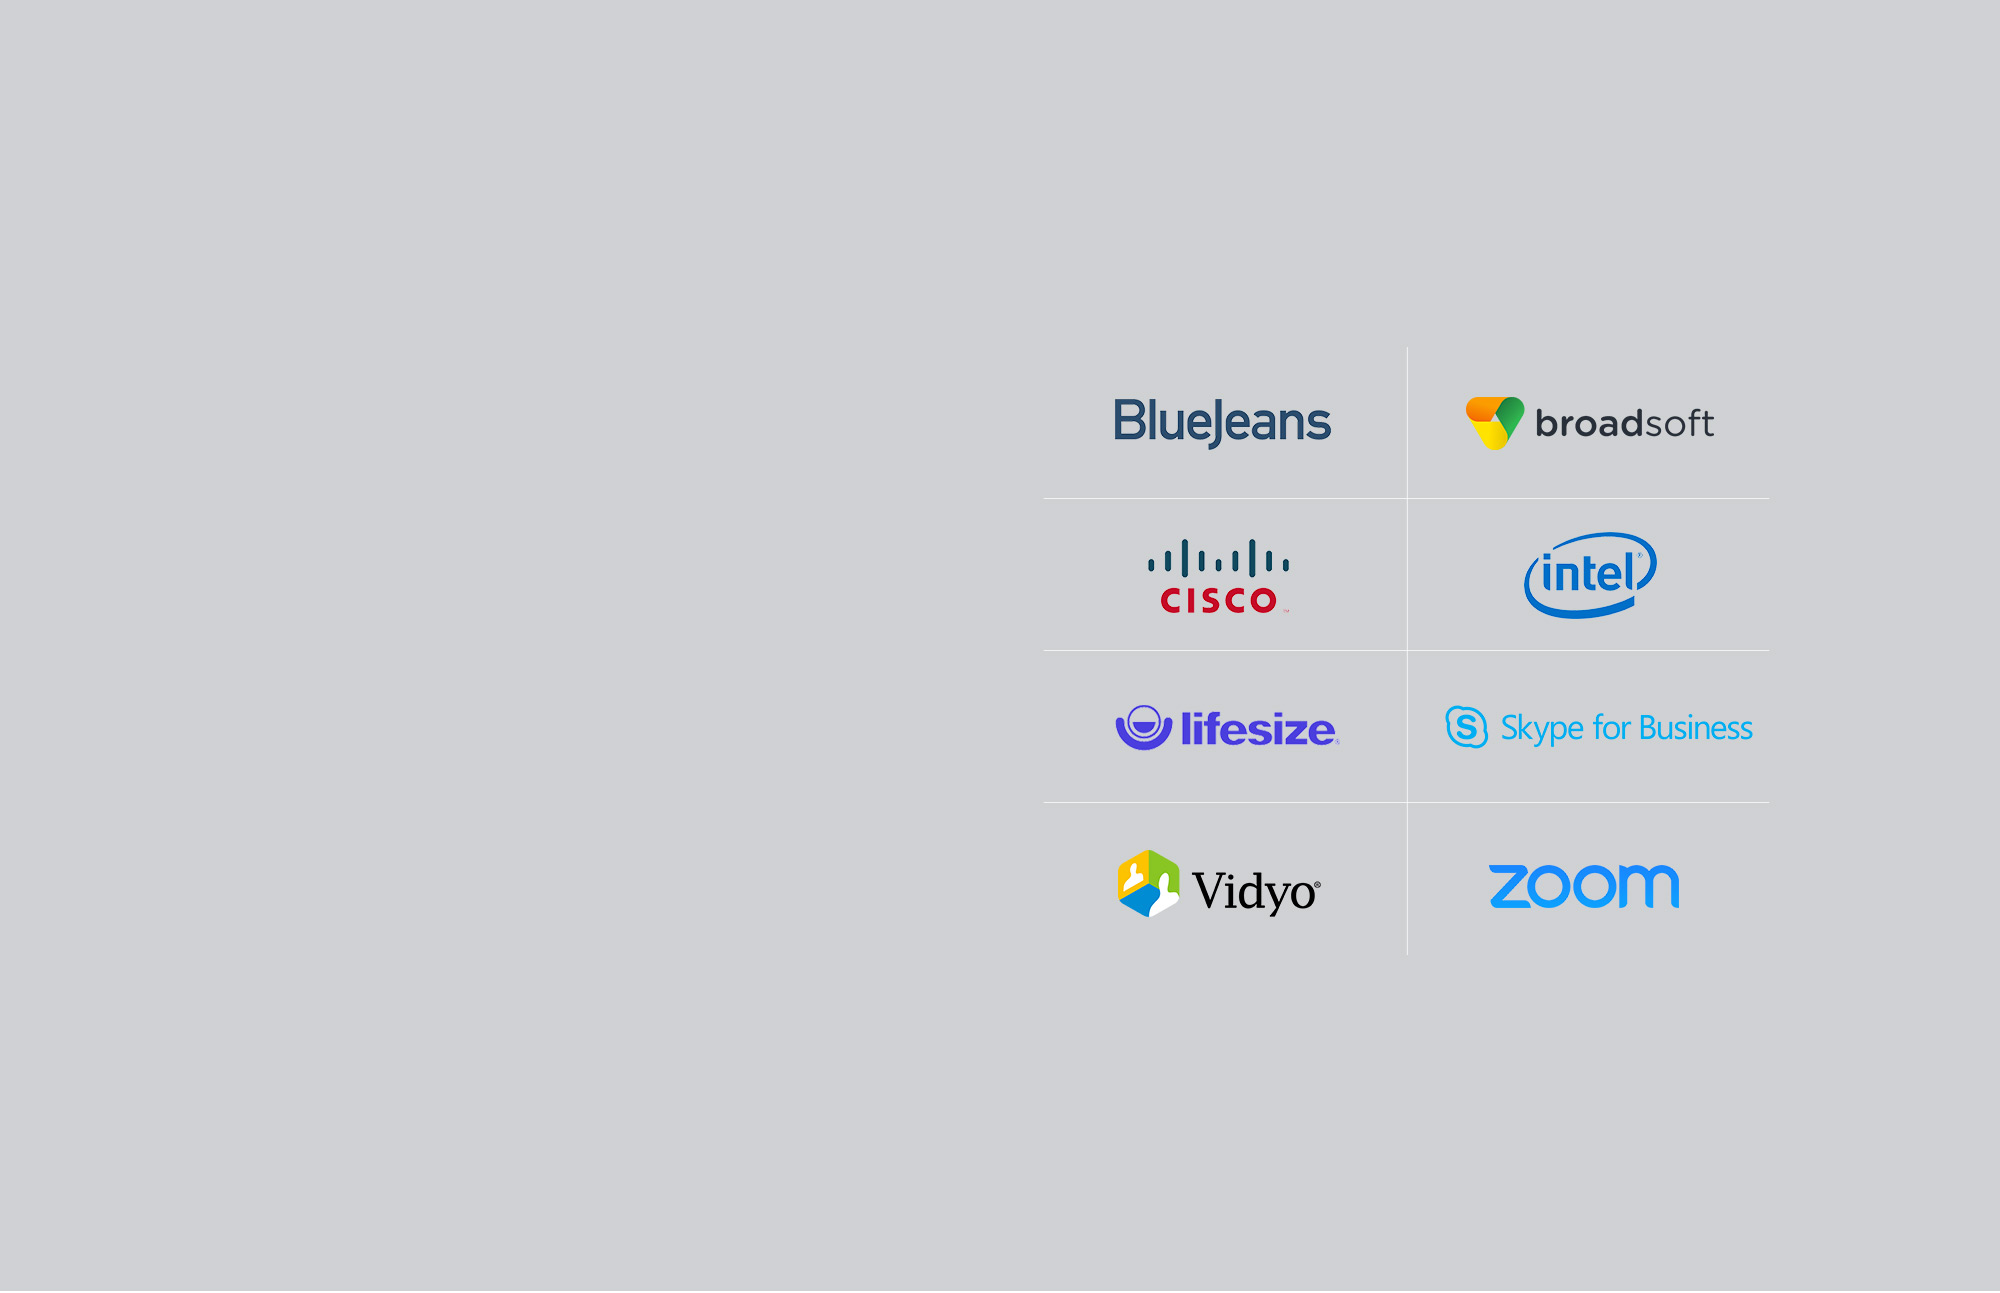 Lifesize, broadsoft, BlueJeans, Lync, Skype for Business, cisco, zoom, and Vidyo logos of companies compatible with C930e.